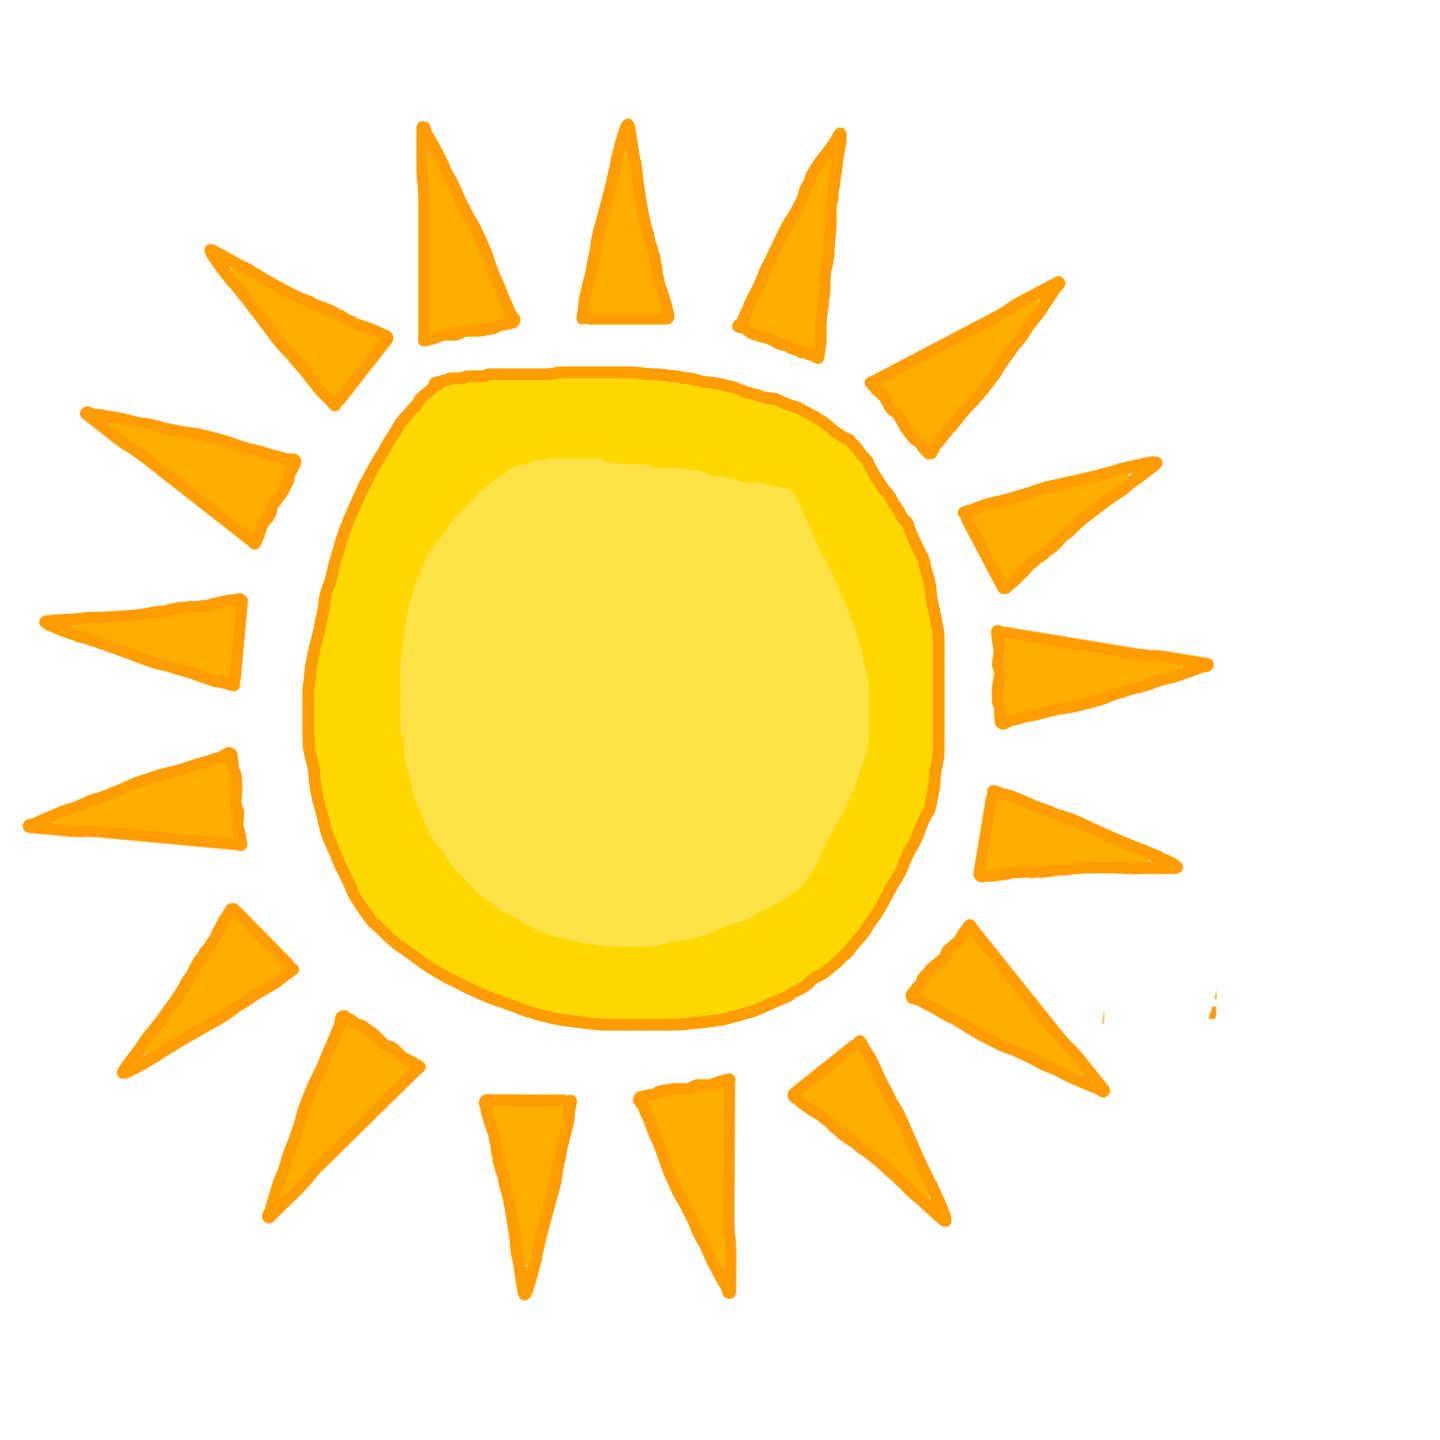 Sun clip art png. Happy no background transparent